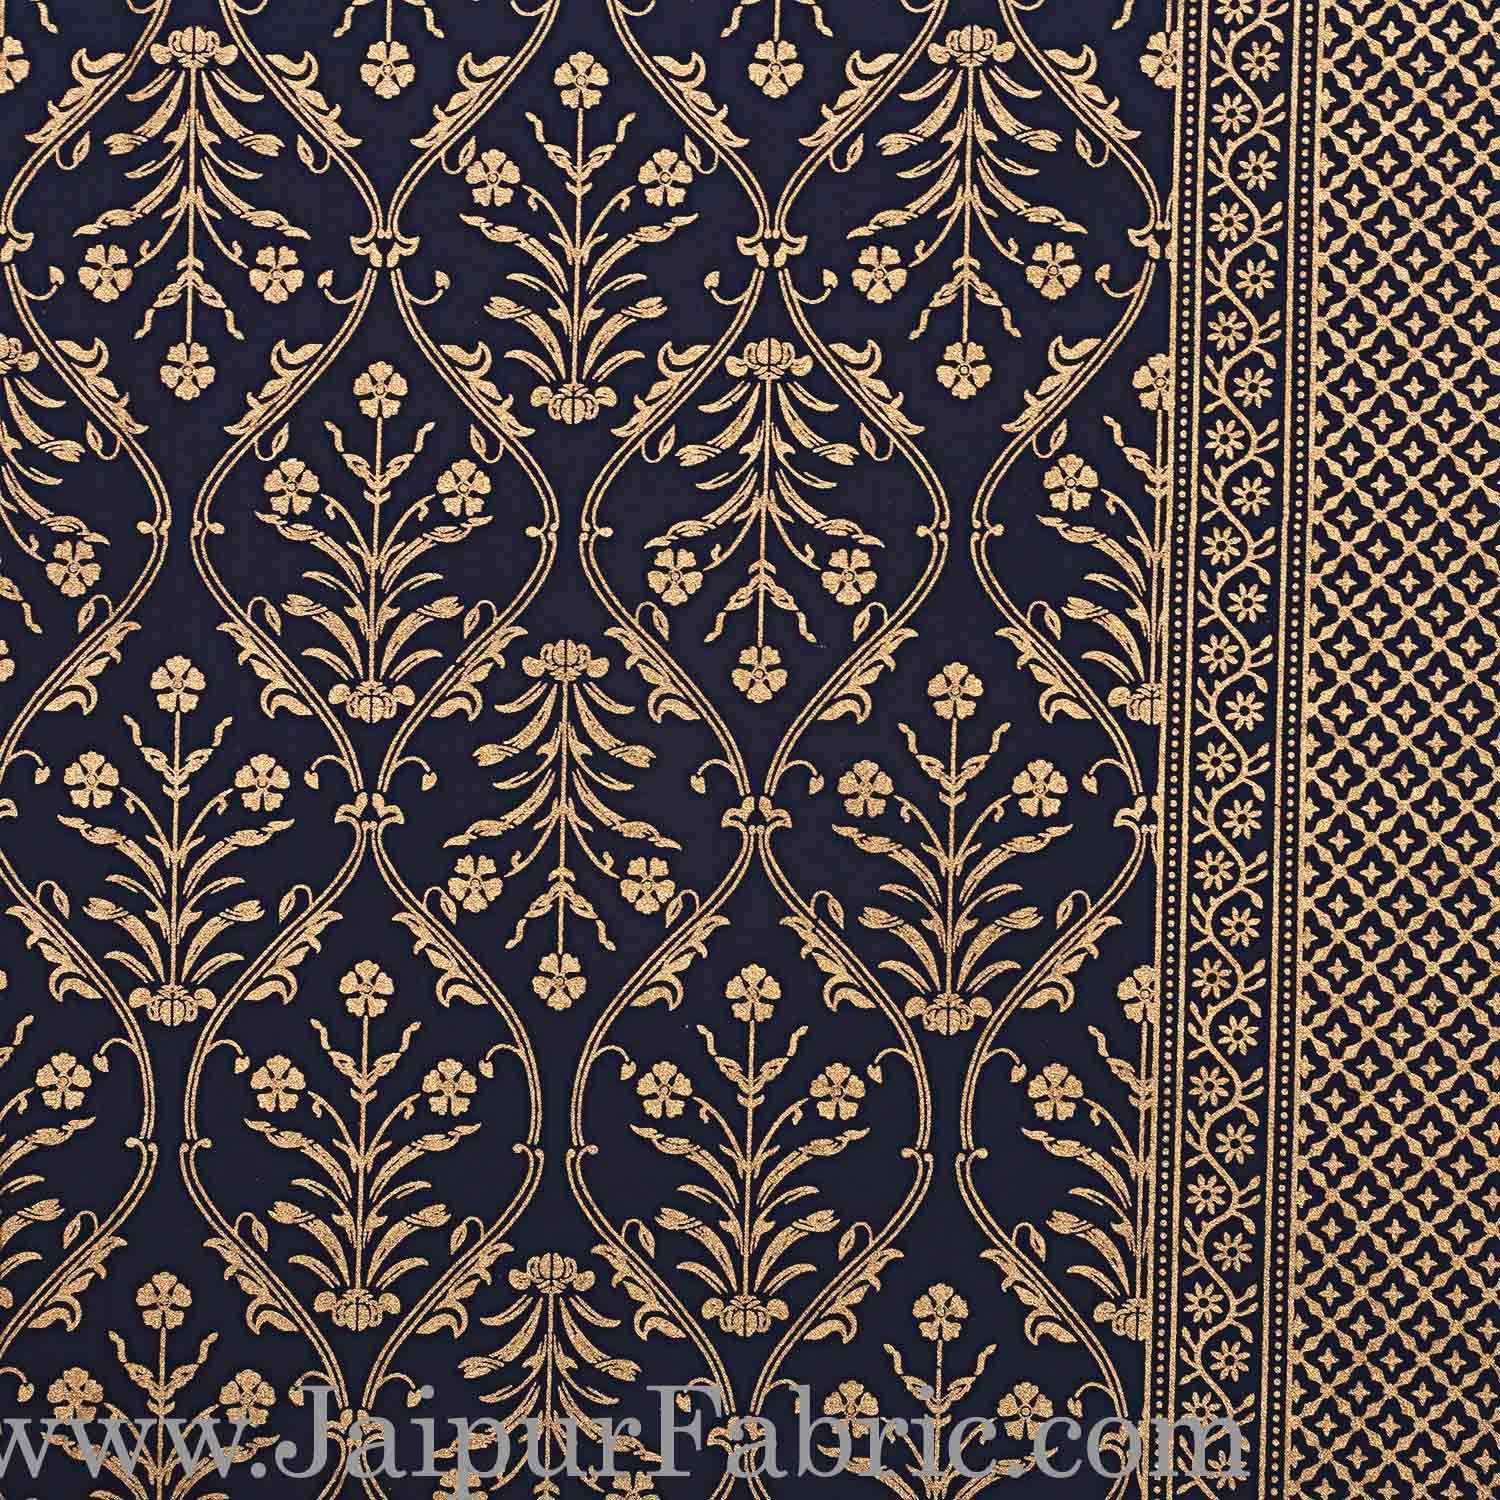 Double Bed Sheet  With Shining Gold Print Blue Base Gold Retro Pattern Super Fine Cotton